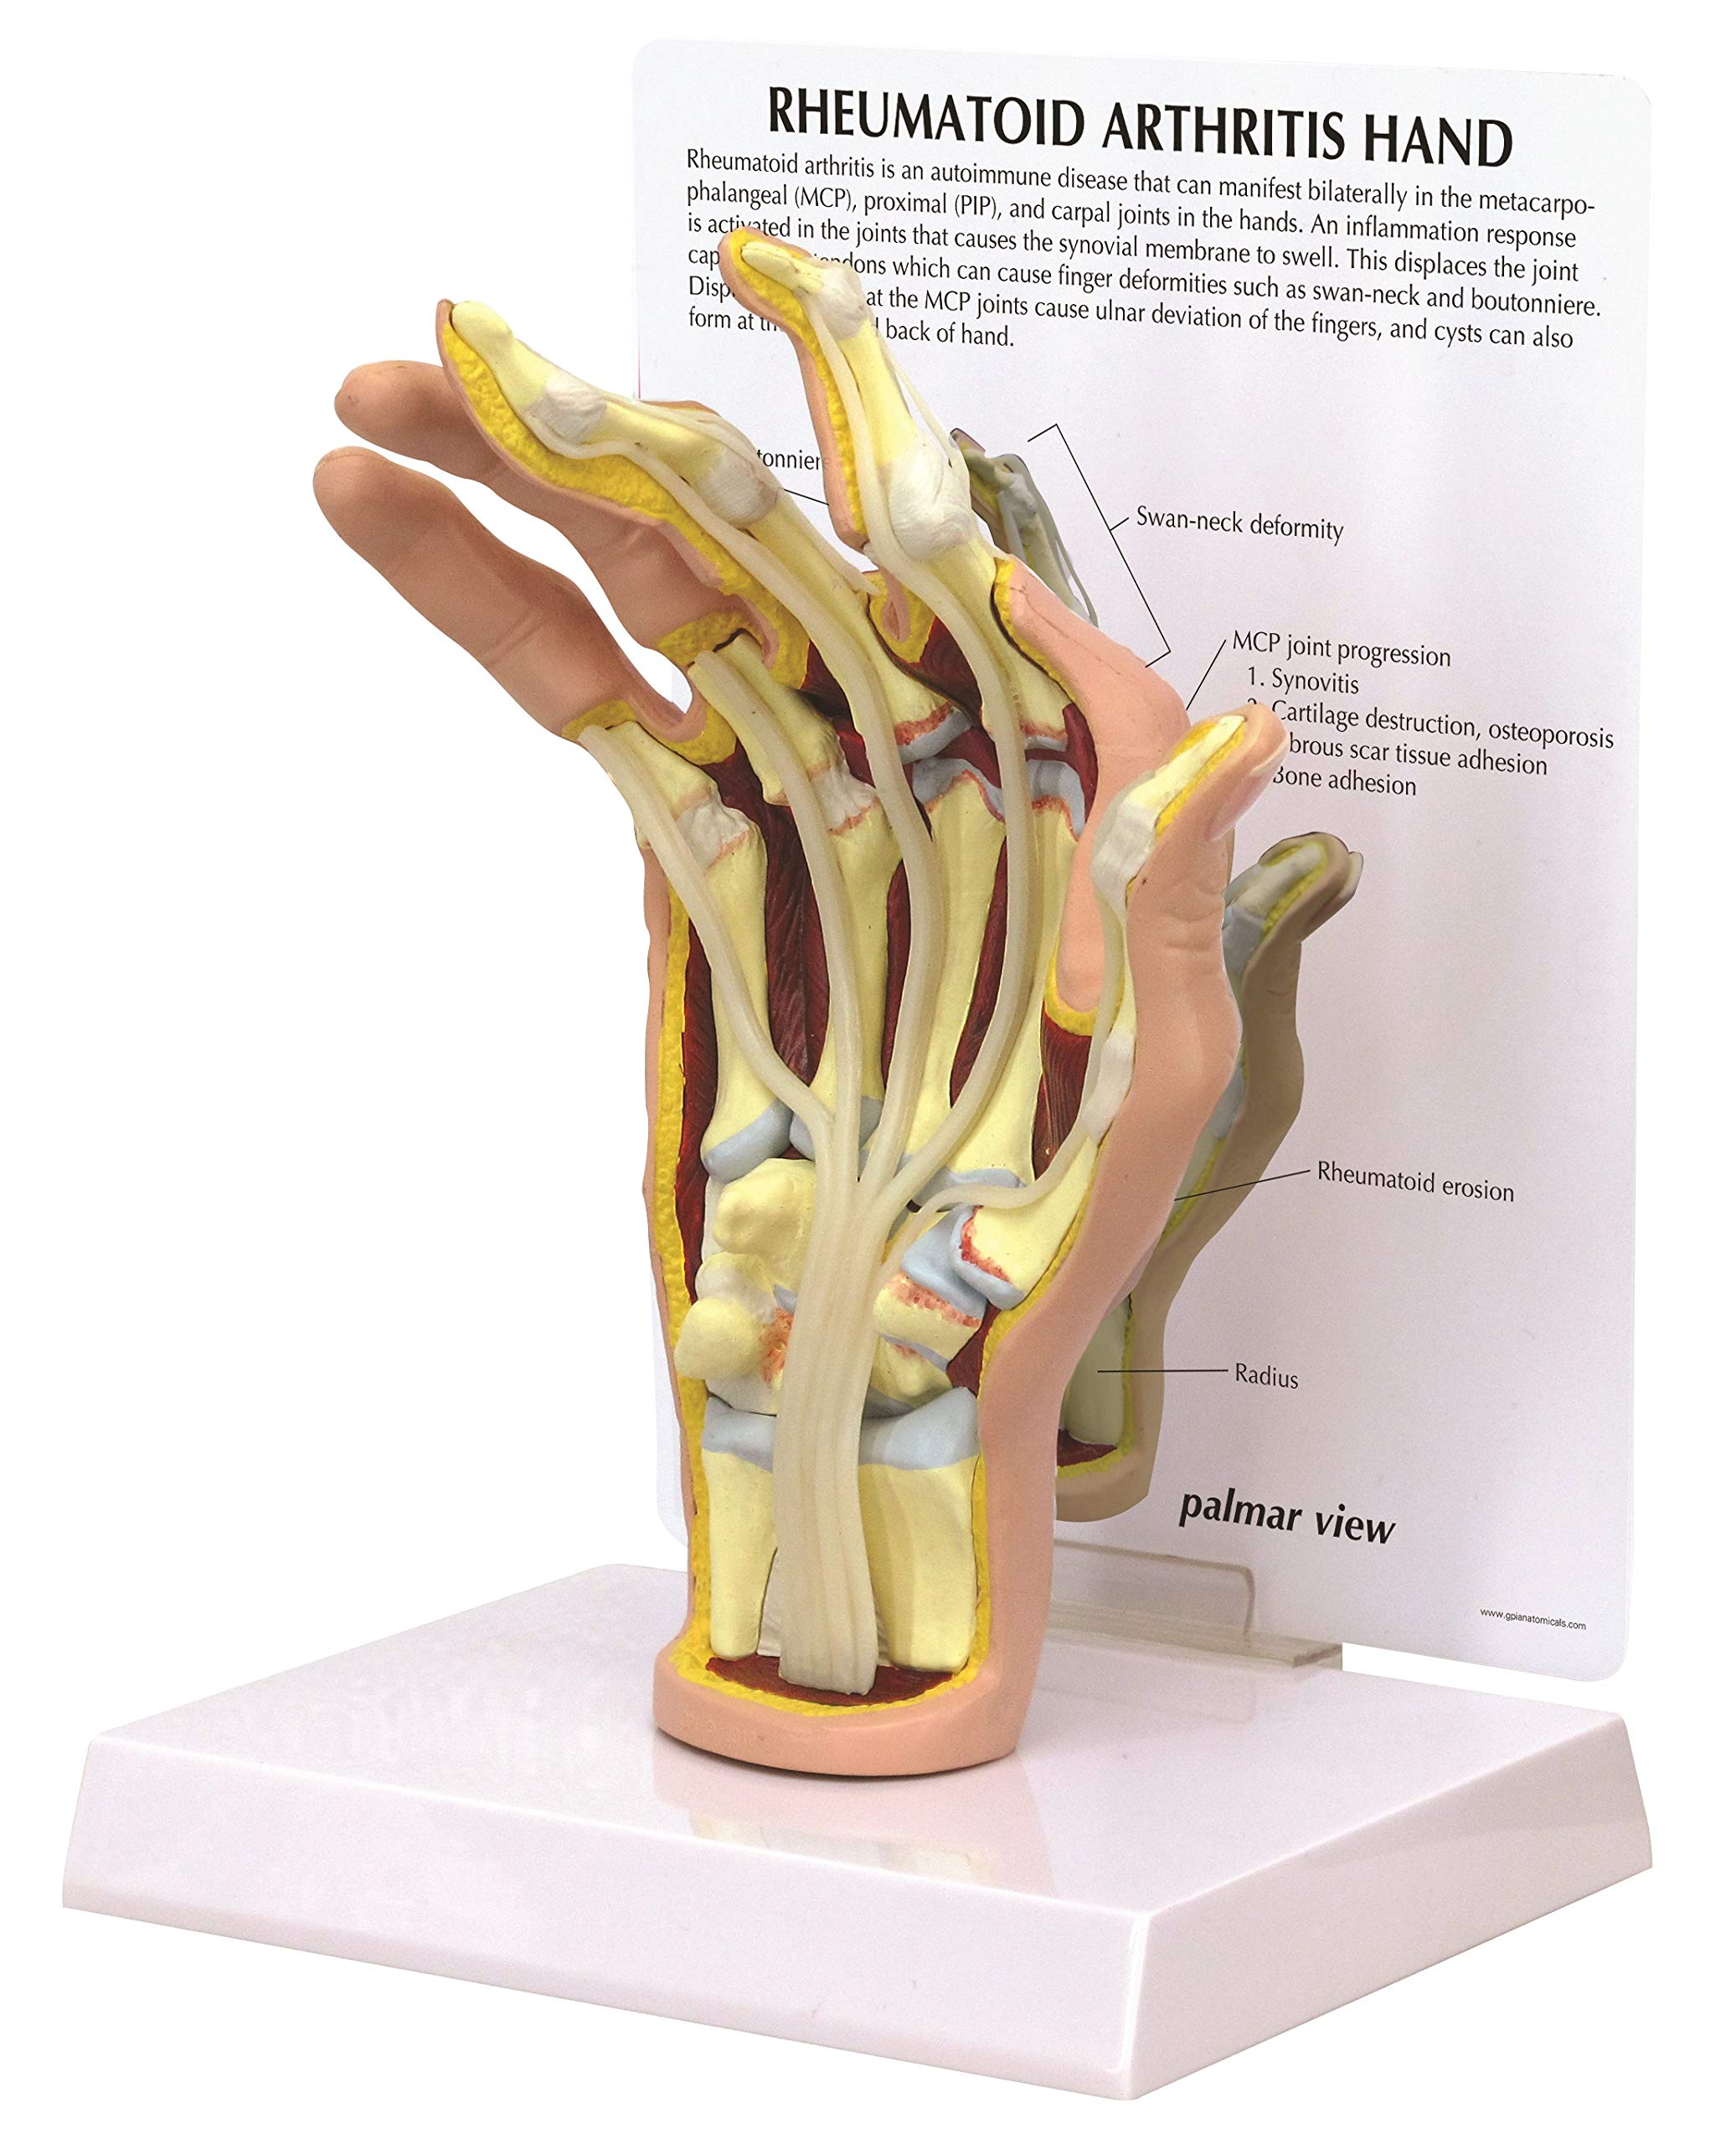 Hand Rheumatoid Arthritis (RA) Anatomical Model